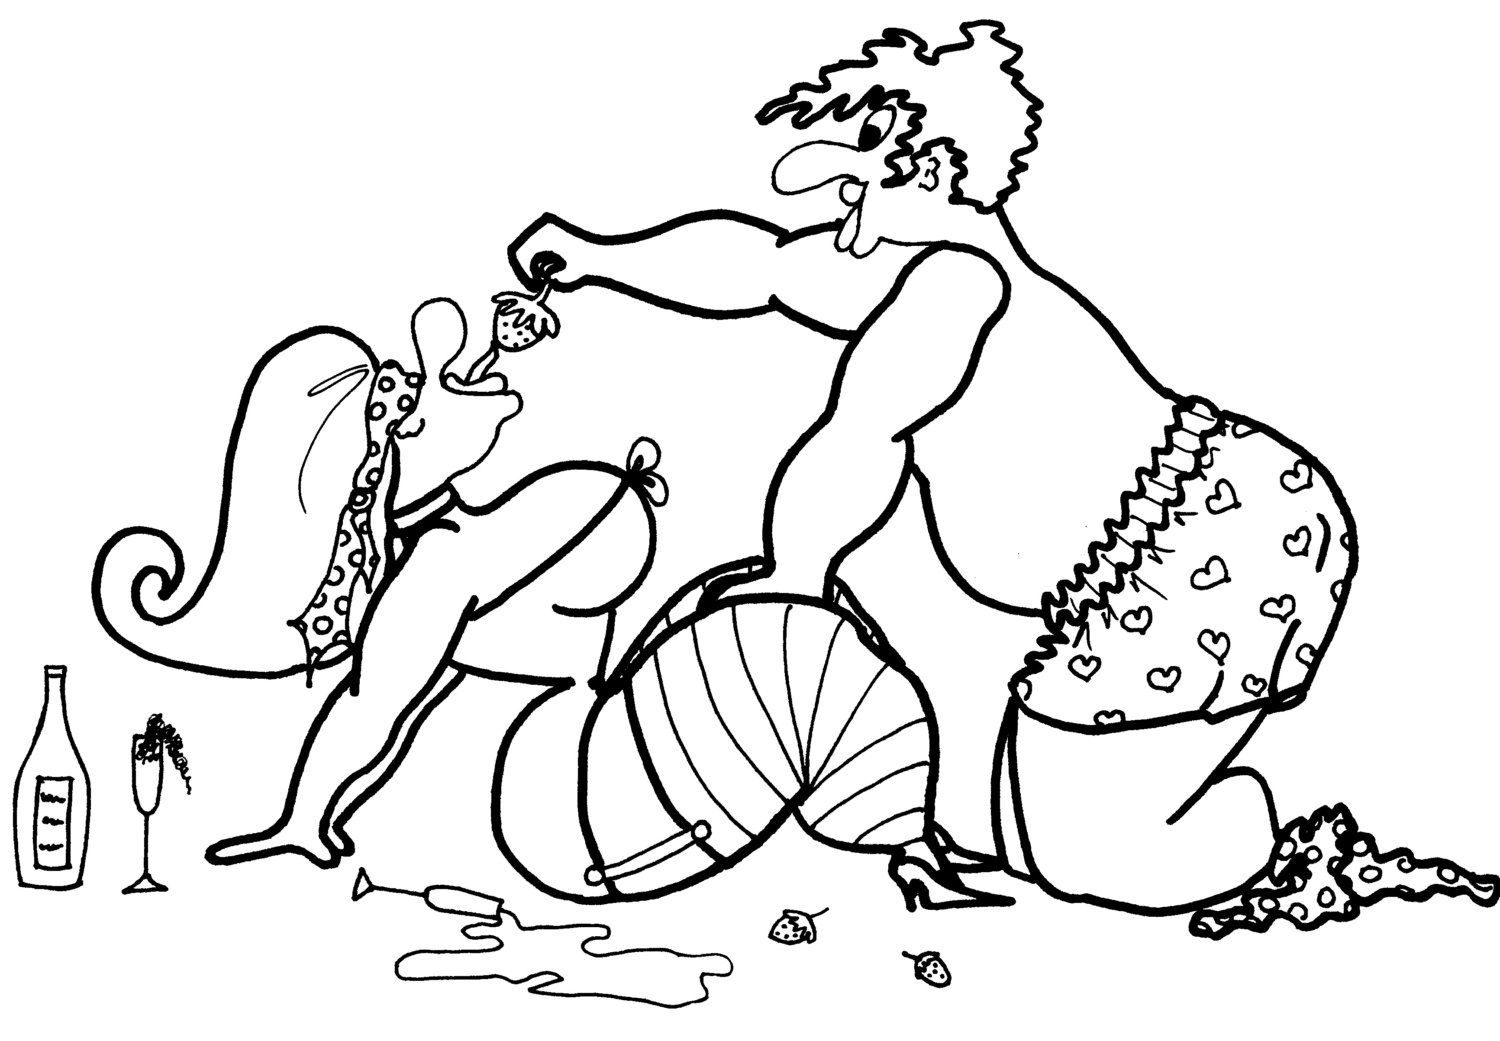 Colouring pages kitchen - Strawberries Champagne Coloring Pages For Adults From The Chubby Art Cartoon Colouring Book Of Erotica Tempting Tastes In The Kitchen